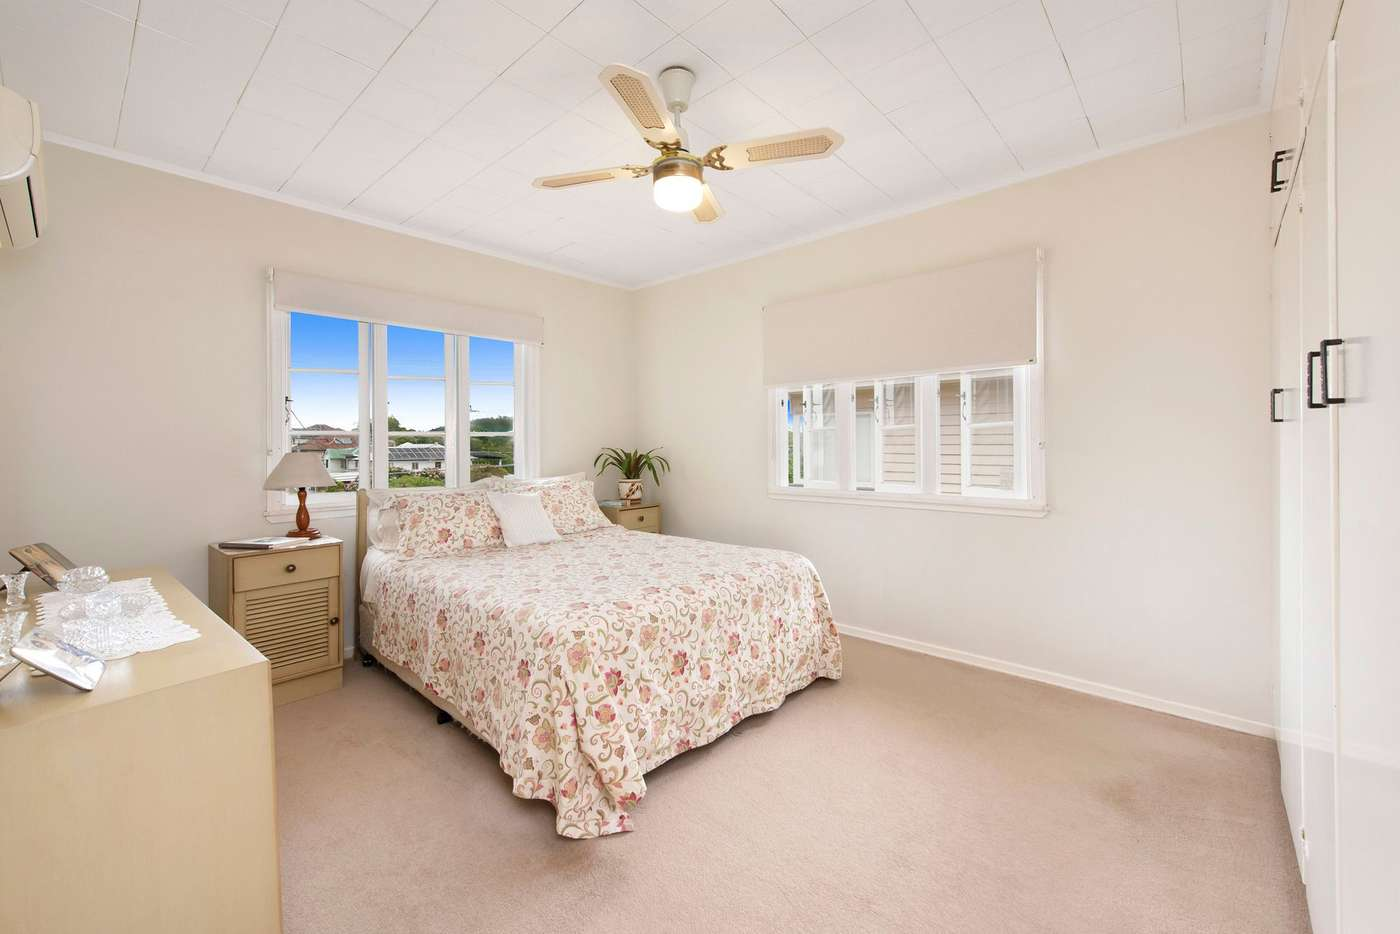 Sixth view of Homely house listing, 114 Holland Road, Holland Park QLD 4121